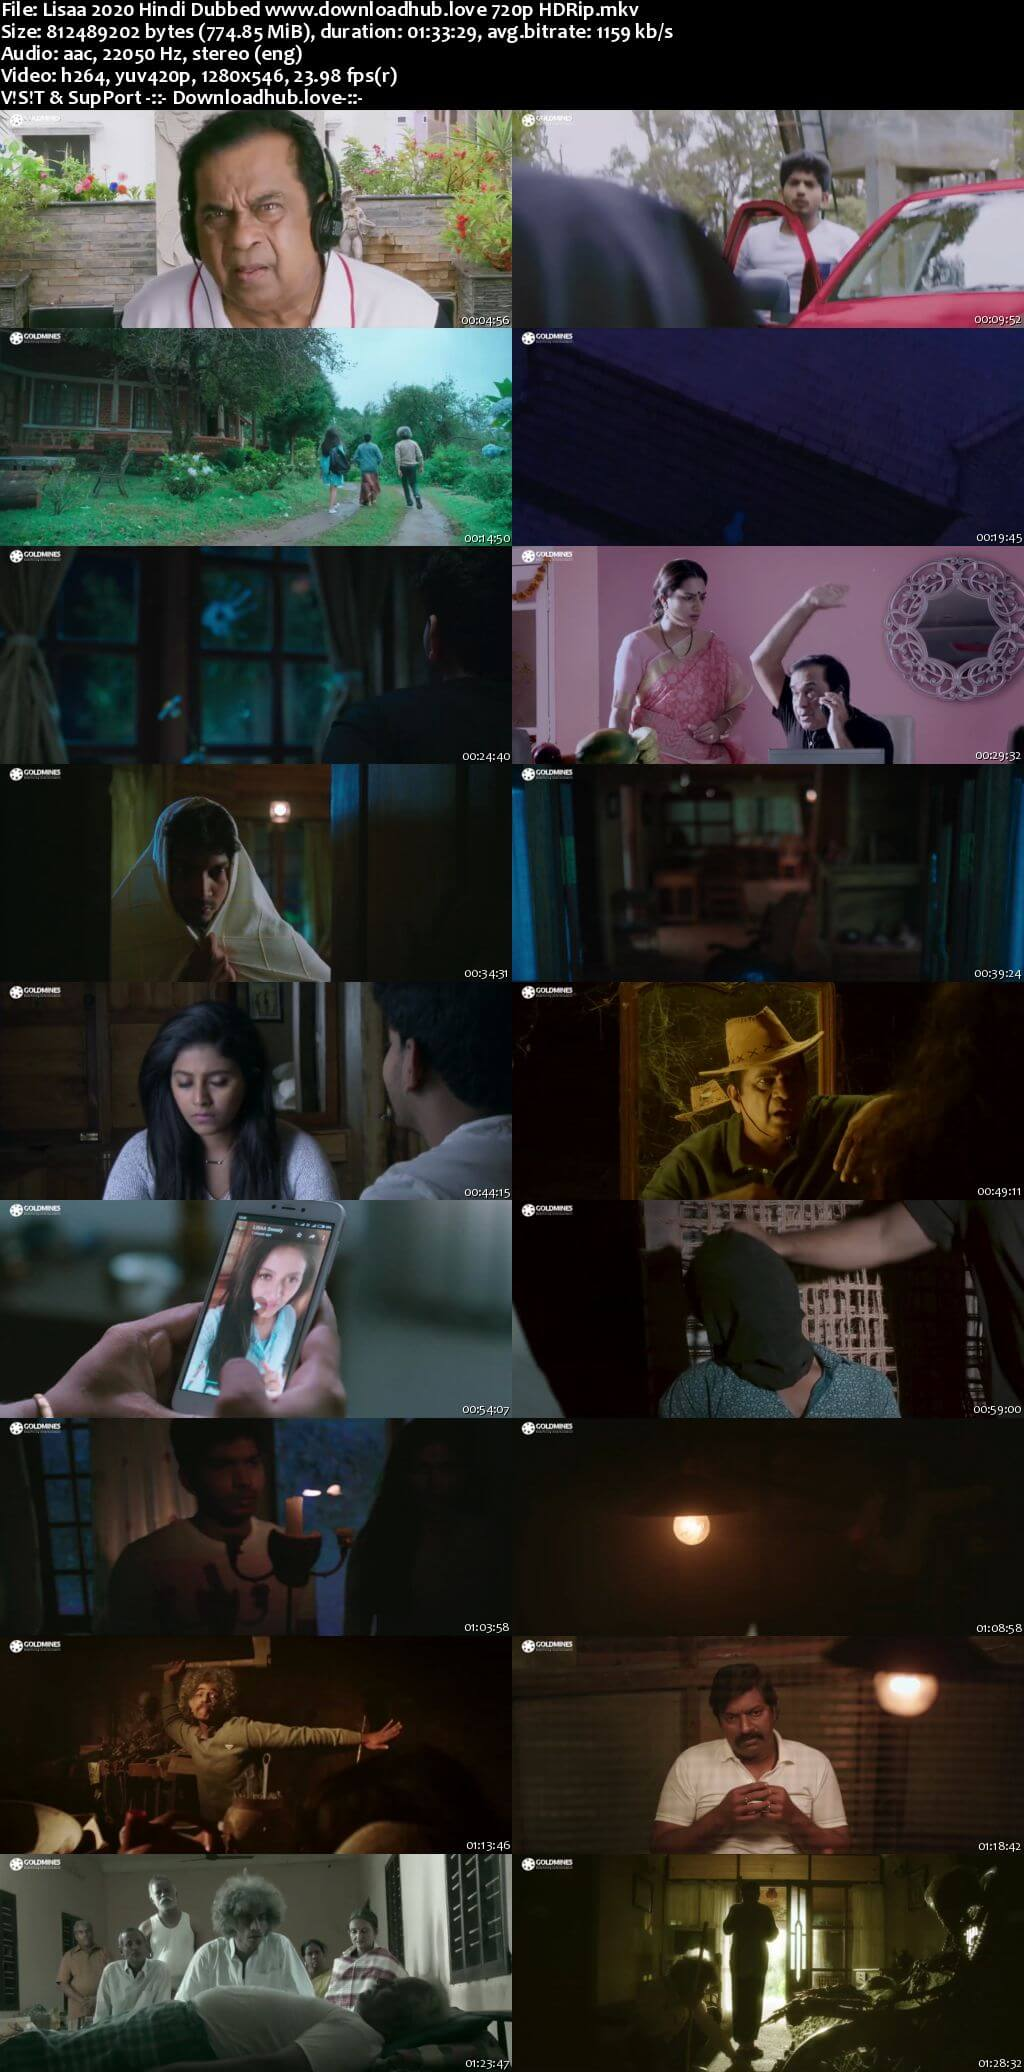 Lisaa 2020 Hindi Dubbed 720p HDRip x264